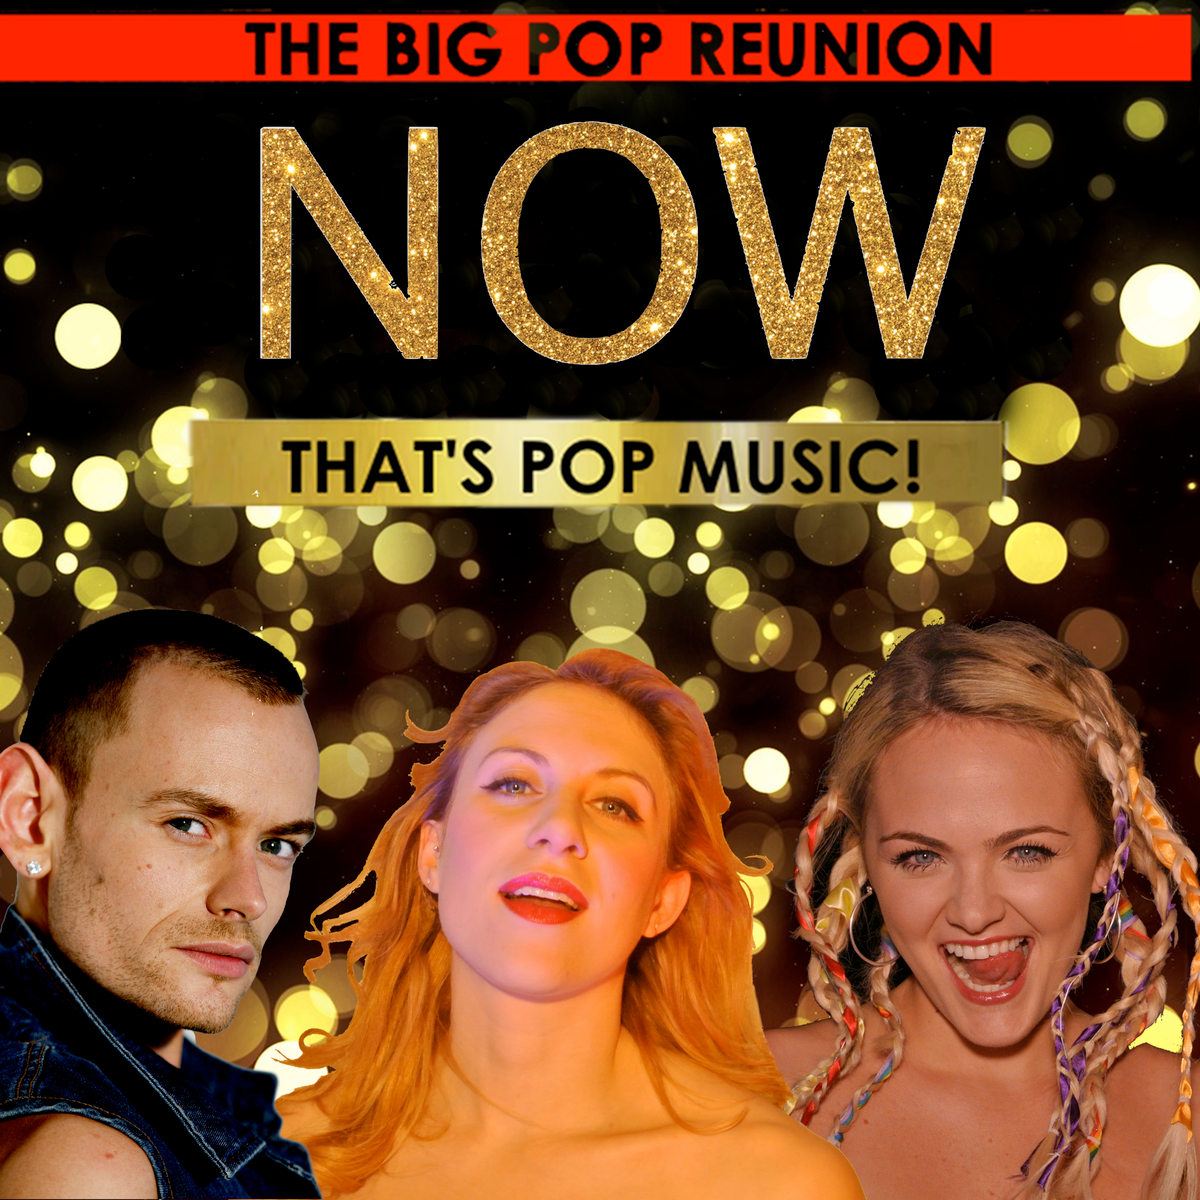 90s pop reunion tribute